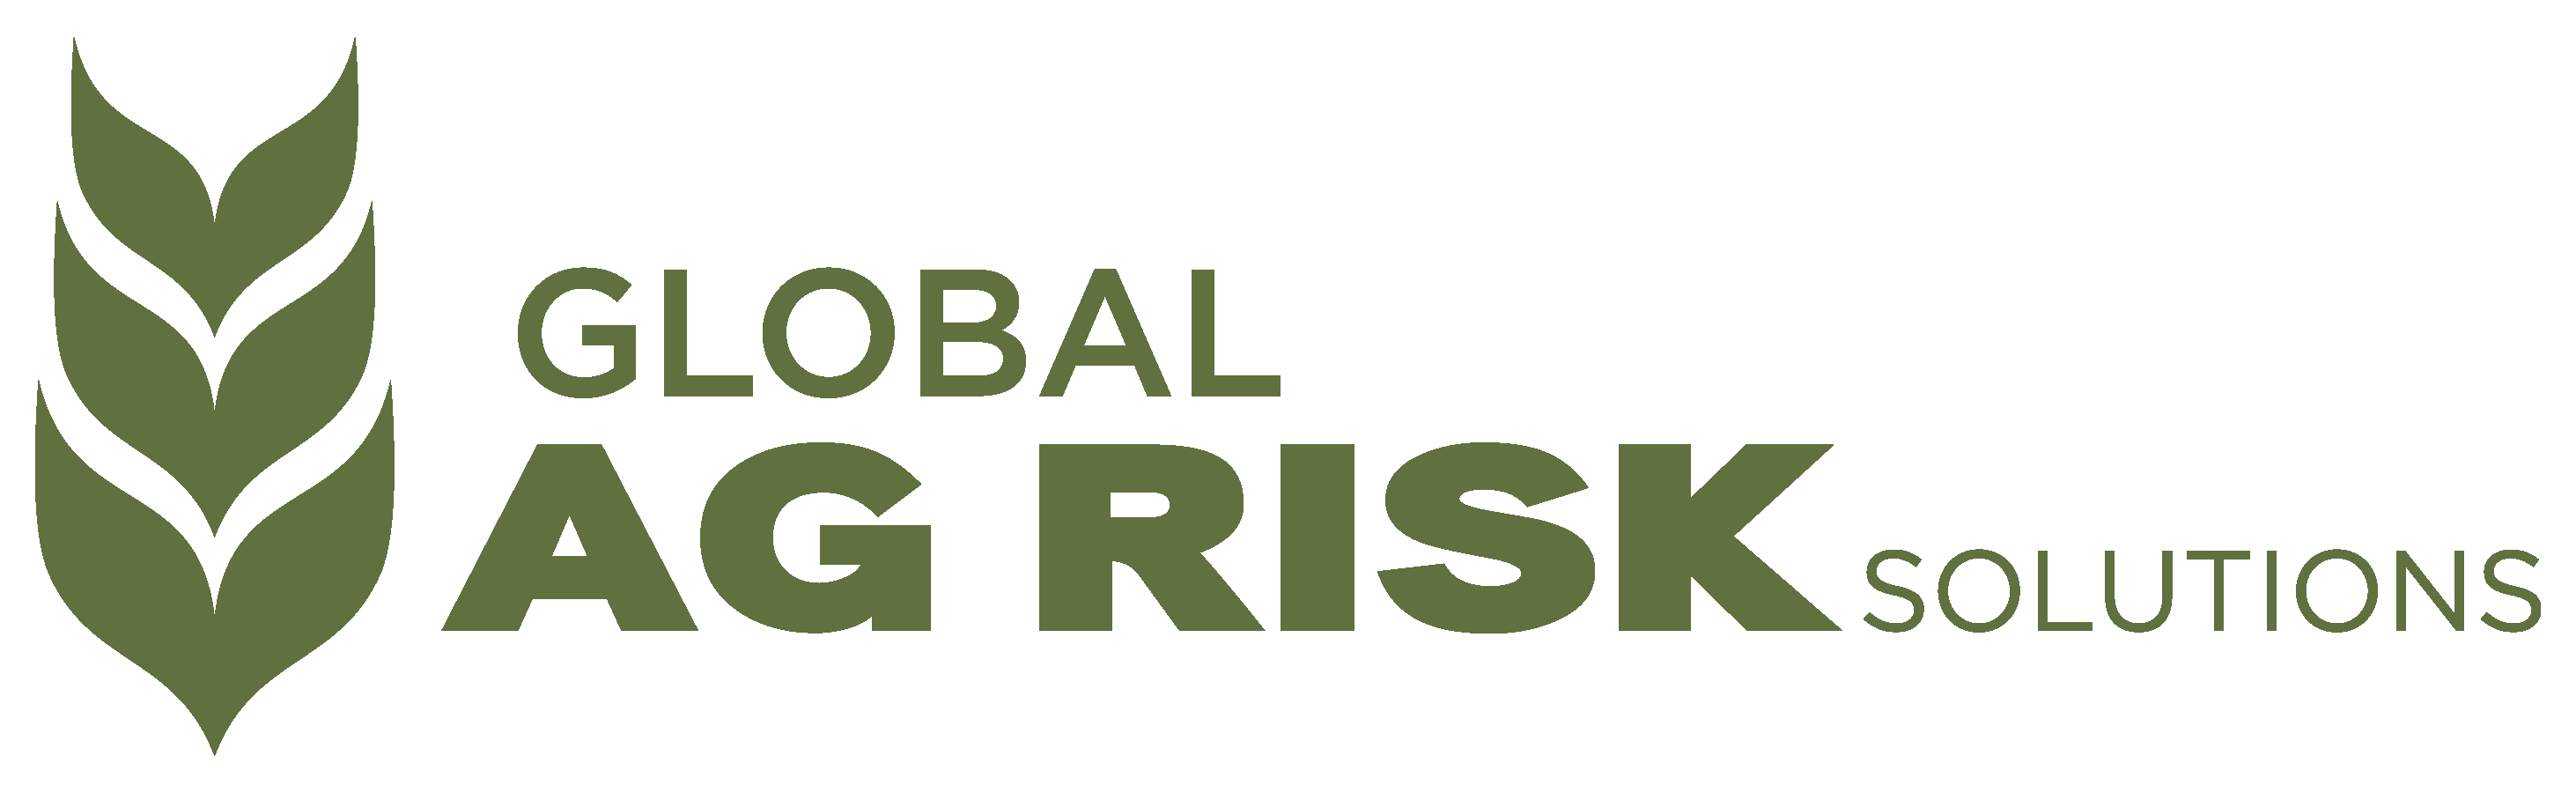 Proud Member of the SJHL - Global Ag Risk Solutions Division b2c6913c7